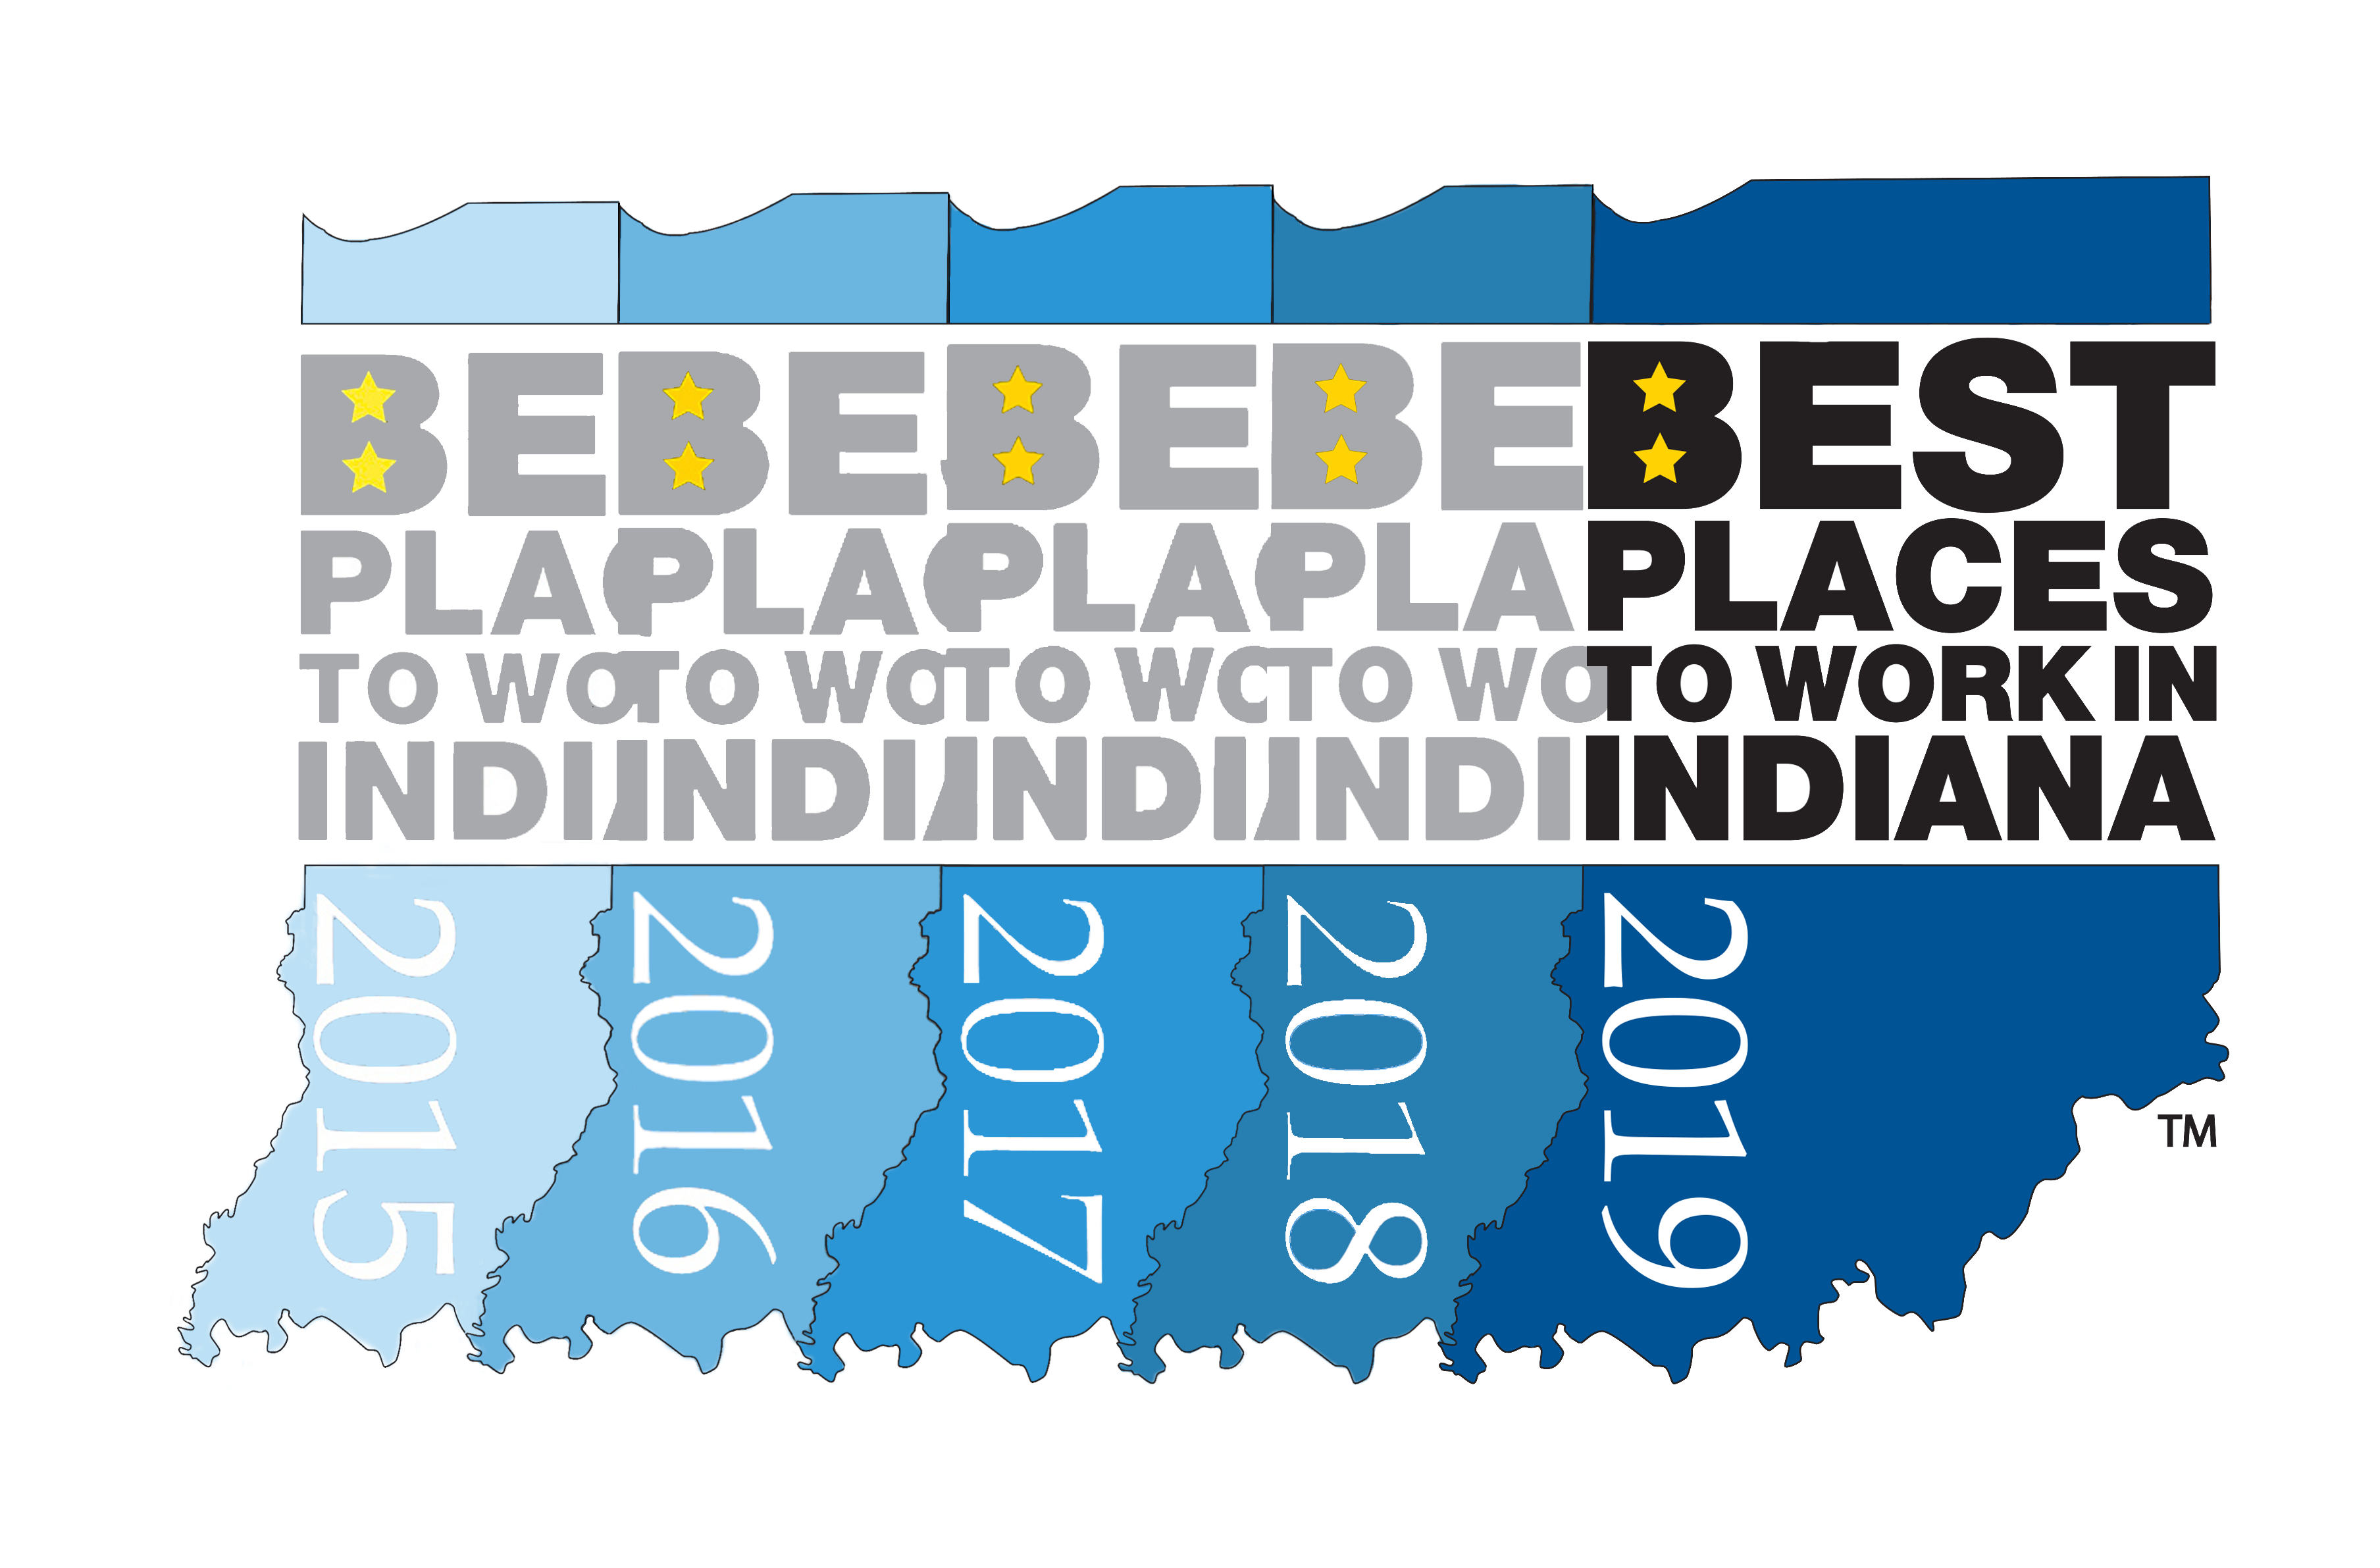 VOSS Awarded 2019 Best Places to Work in Indiana!